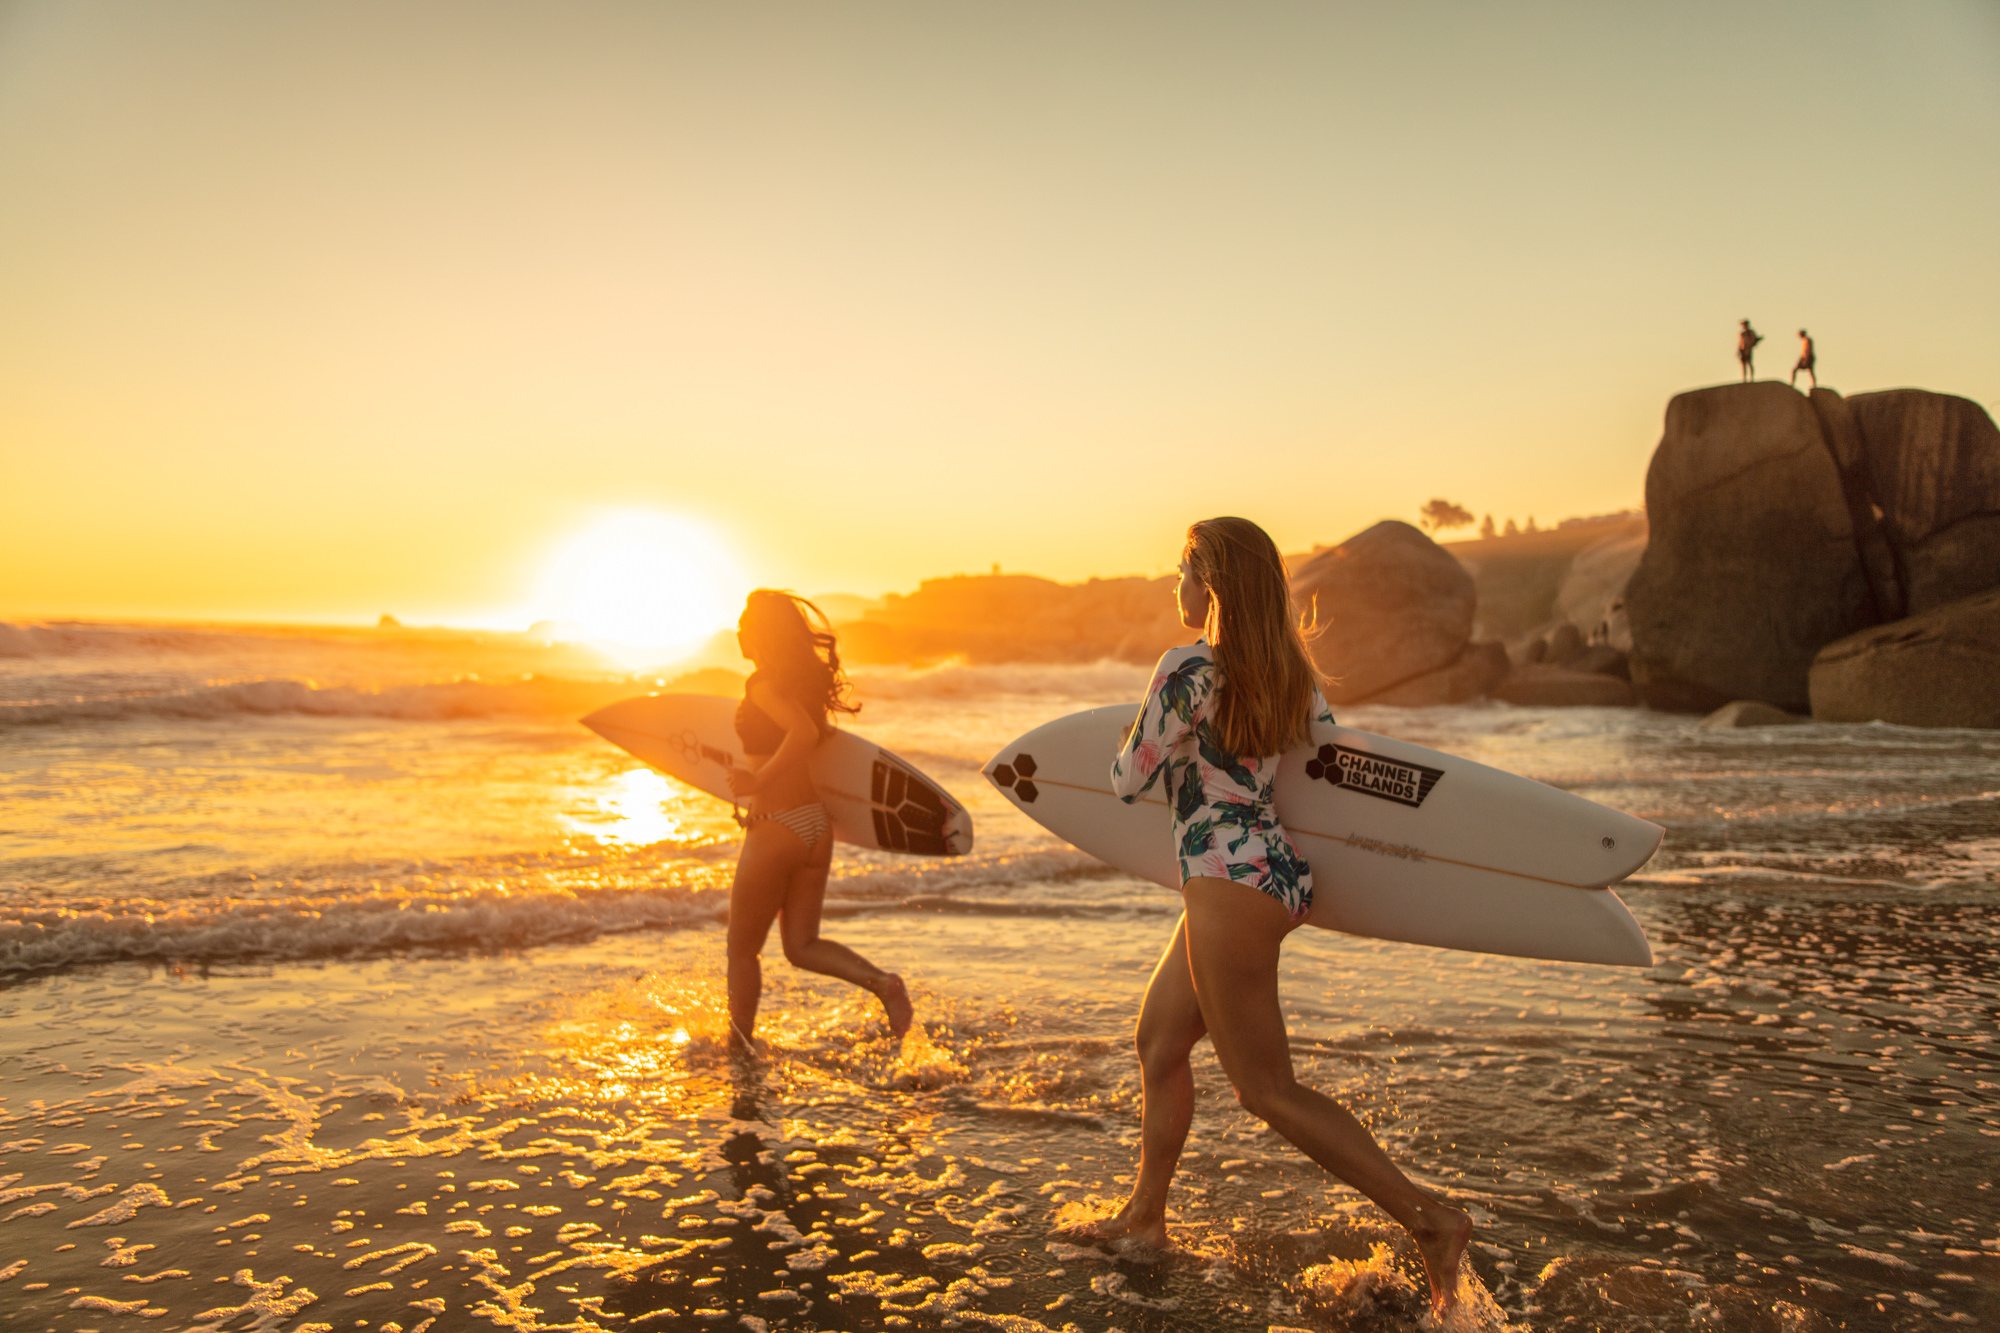 Image of girls running on the beach to the water for a sunset surf in Cape Town for  Tsogo Sun's Image Library & Content Library by Michelle Wastie Photography